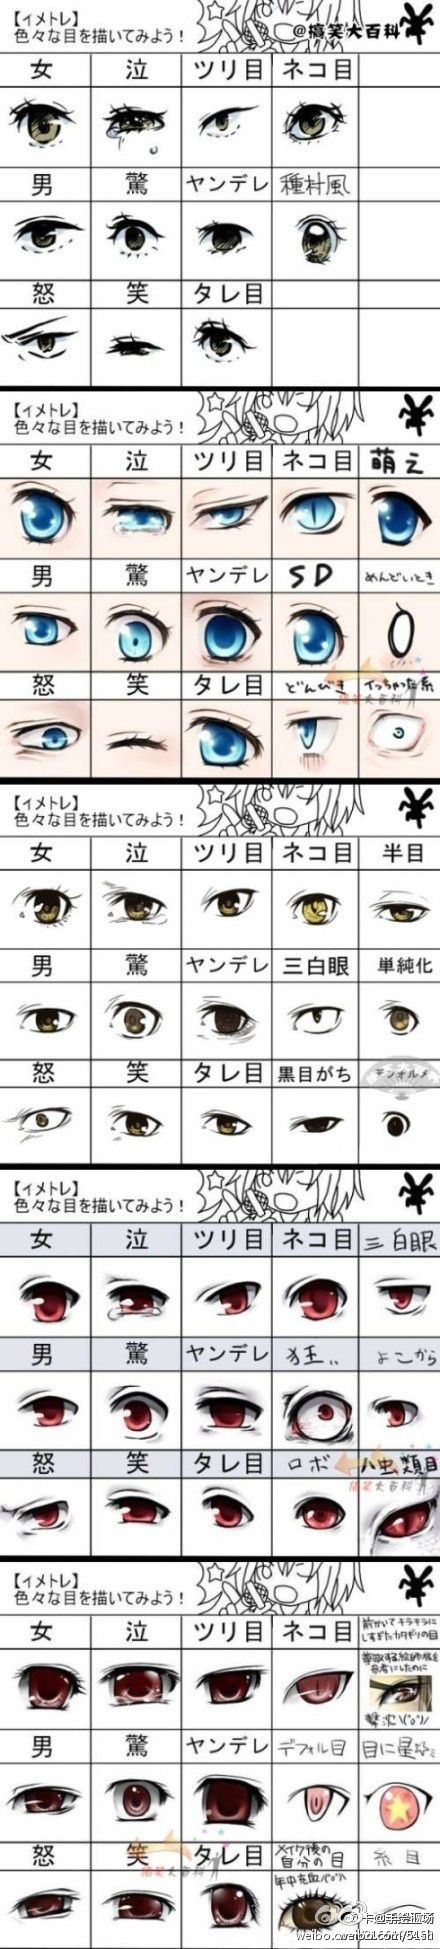 How to draw anime eyes. Interesting, considering I've never really been able to master anime.